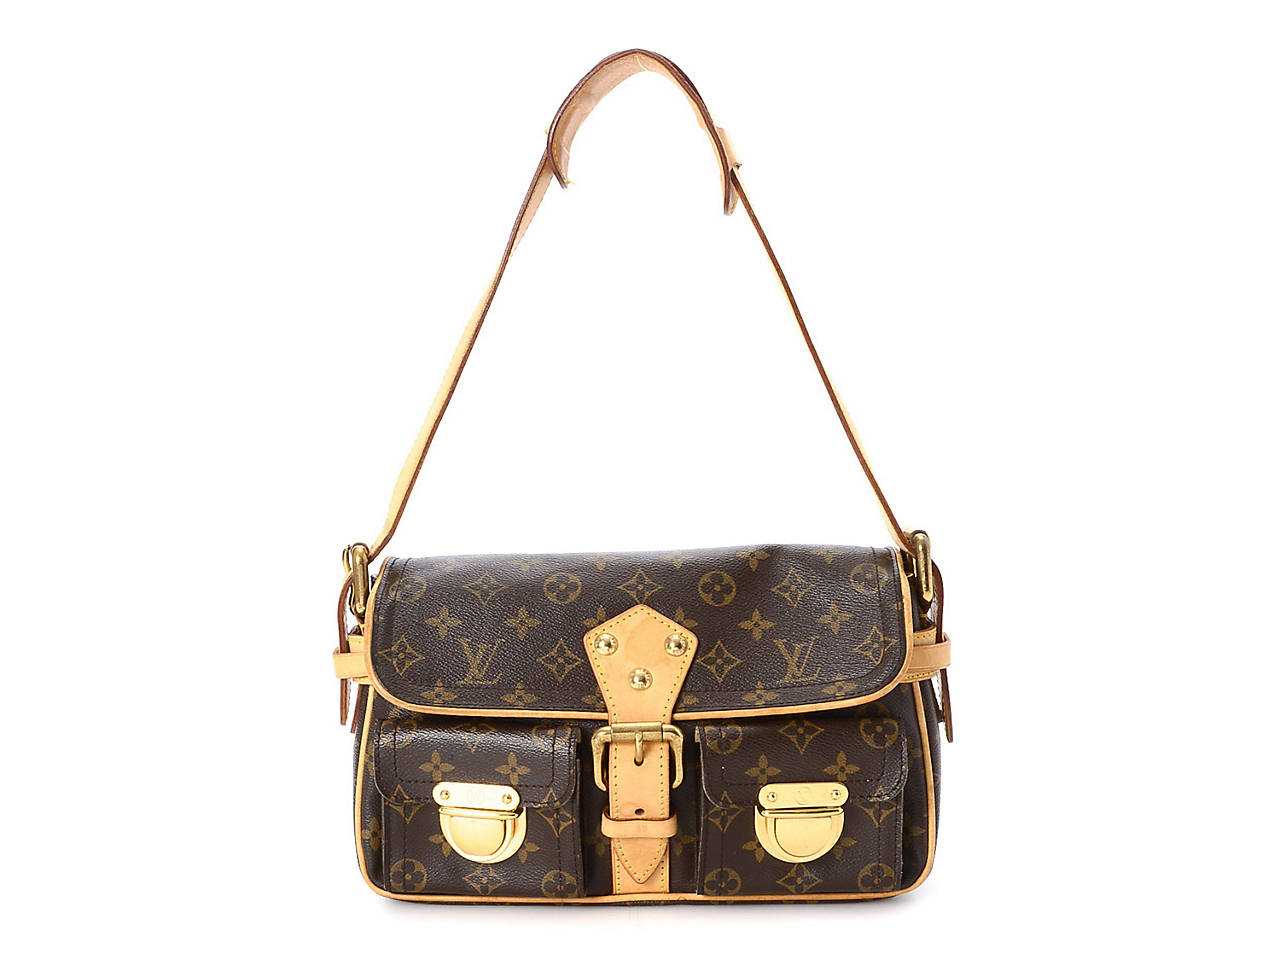 65734fad1eef Hudson PM Short Strap Shoulder Bag. Lyst – Louis Vuitton Musette Tango  Short Strap Shoulder Bag Monogram M51257 in Brown